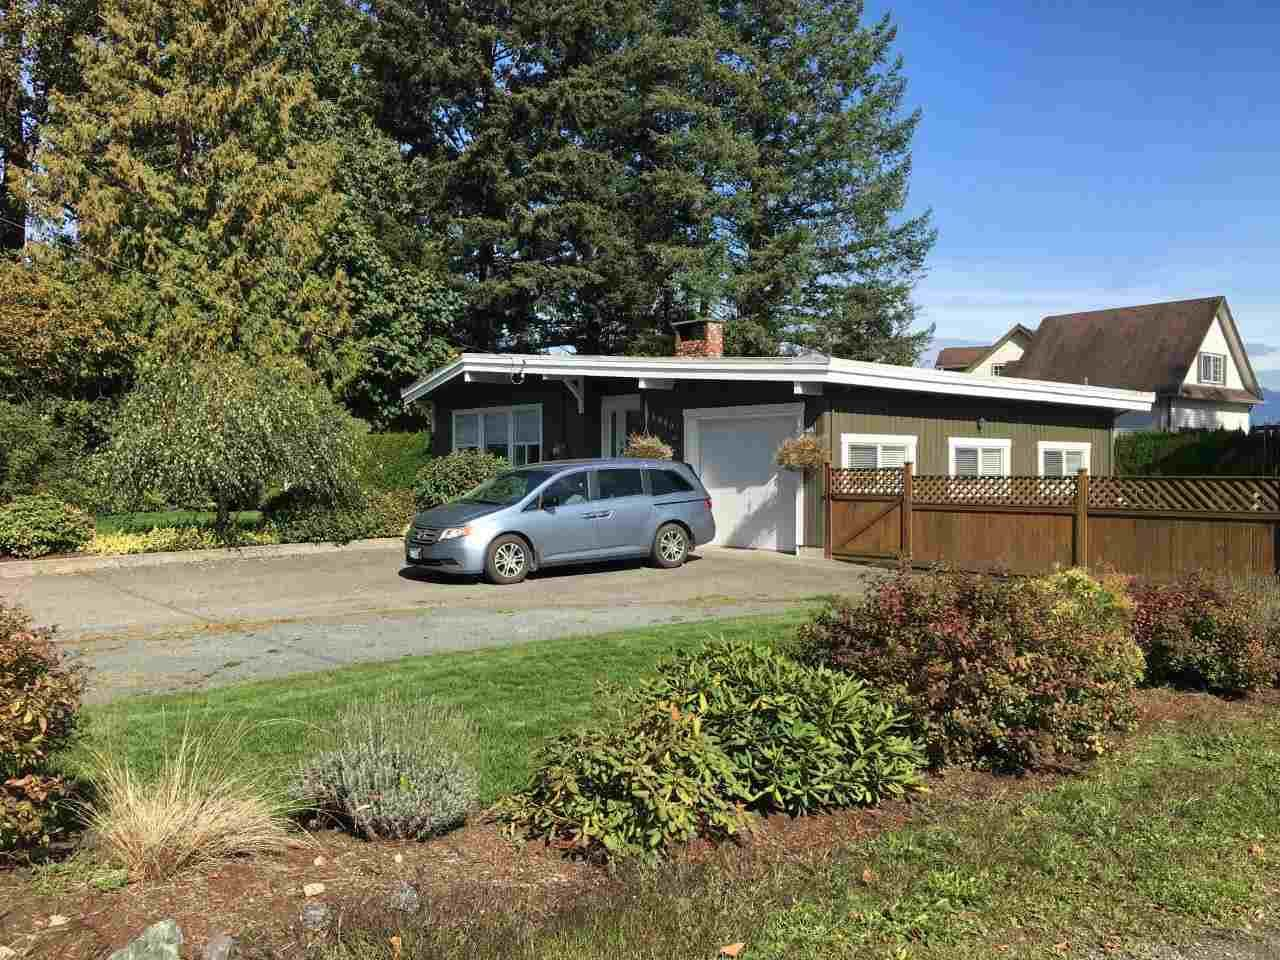 Main Photo: 11080 MCSWEEN Road in Chilliwack: Fairfield Island House for sale : MLS®# R2341344